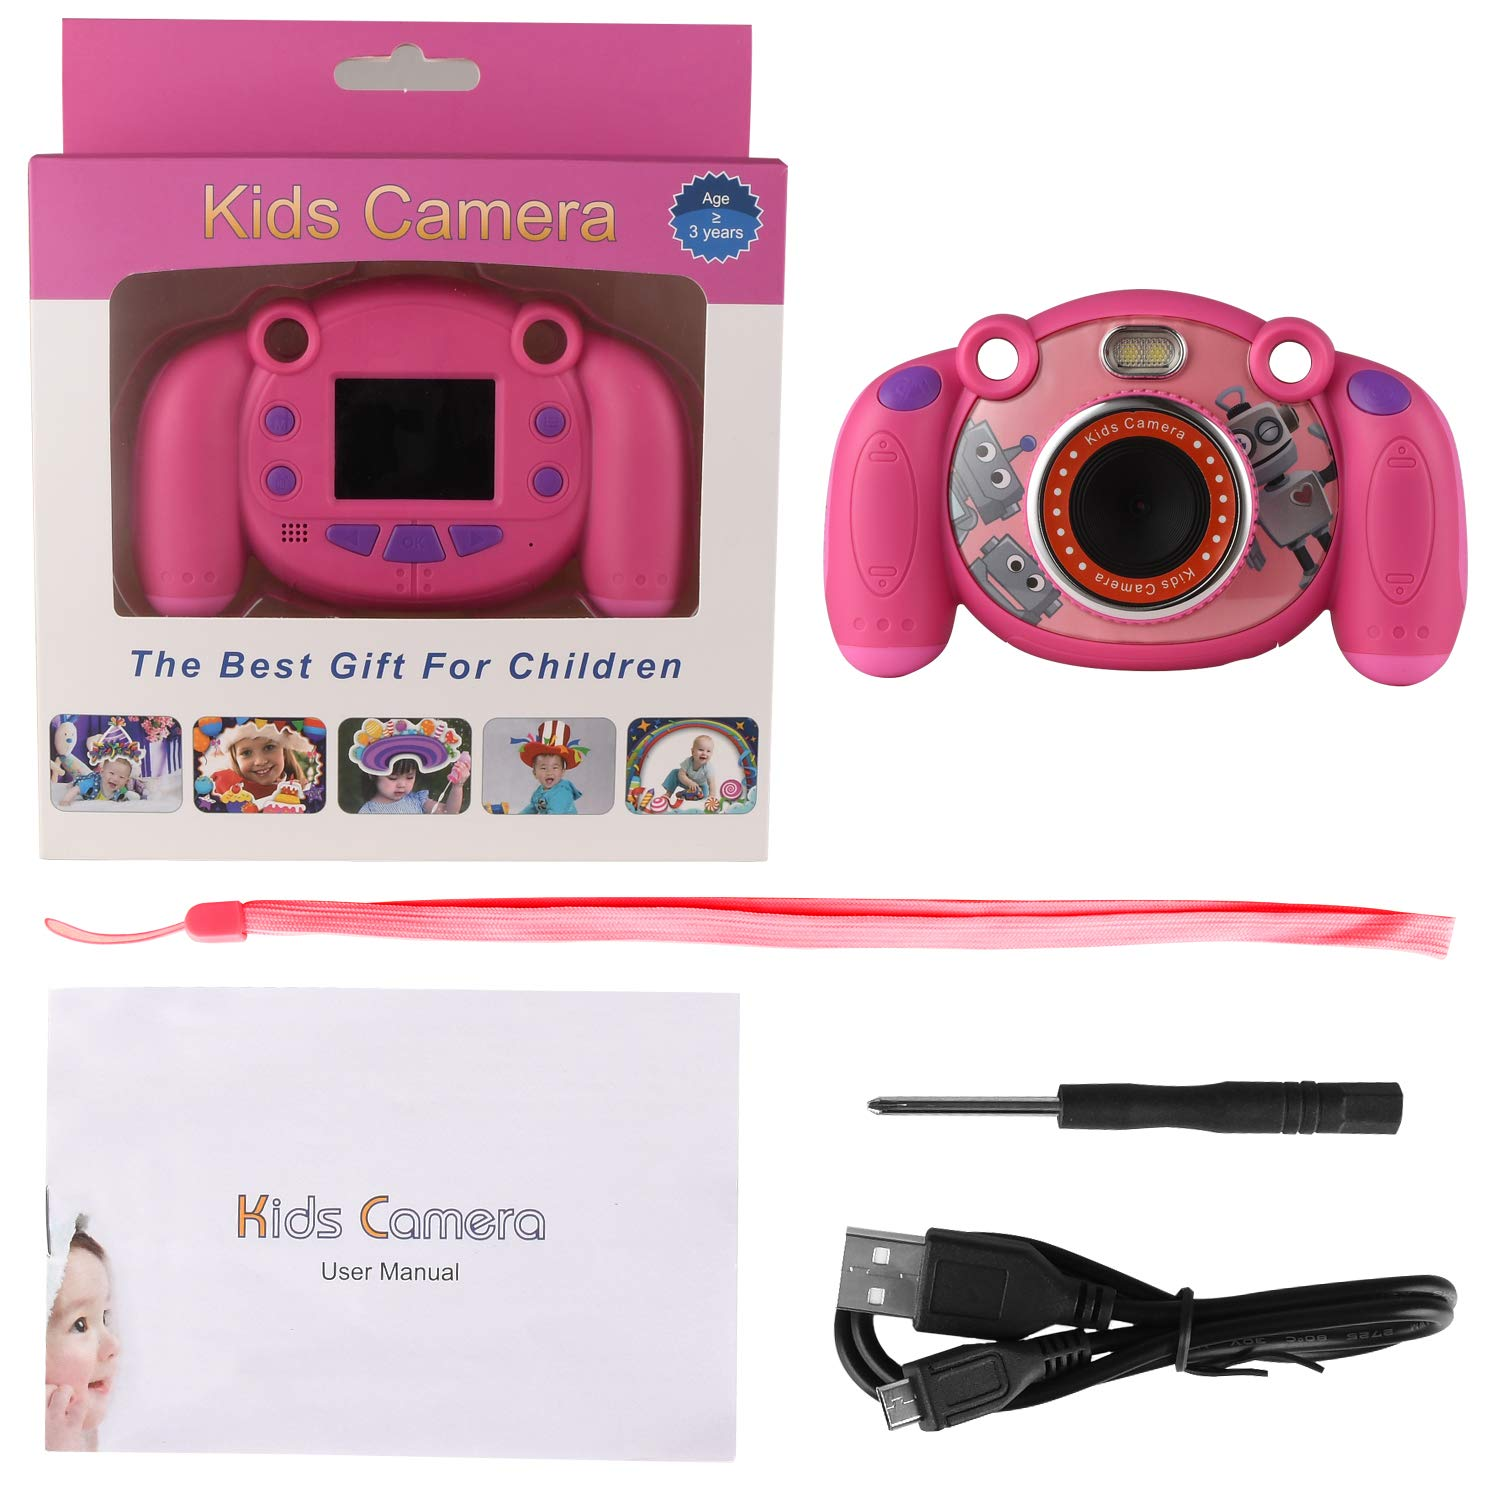 eyesen Kids Camera Digital Child Camcorder Shockproof Mini Camera with LED Flash Light and 2.0 Inch Sreen, Gifts for 4-8 Year Old Girls by eyesen (Image #7)